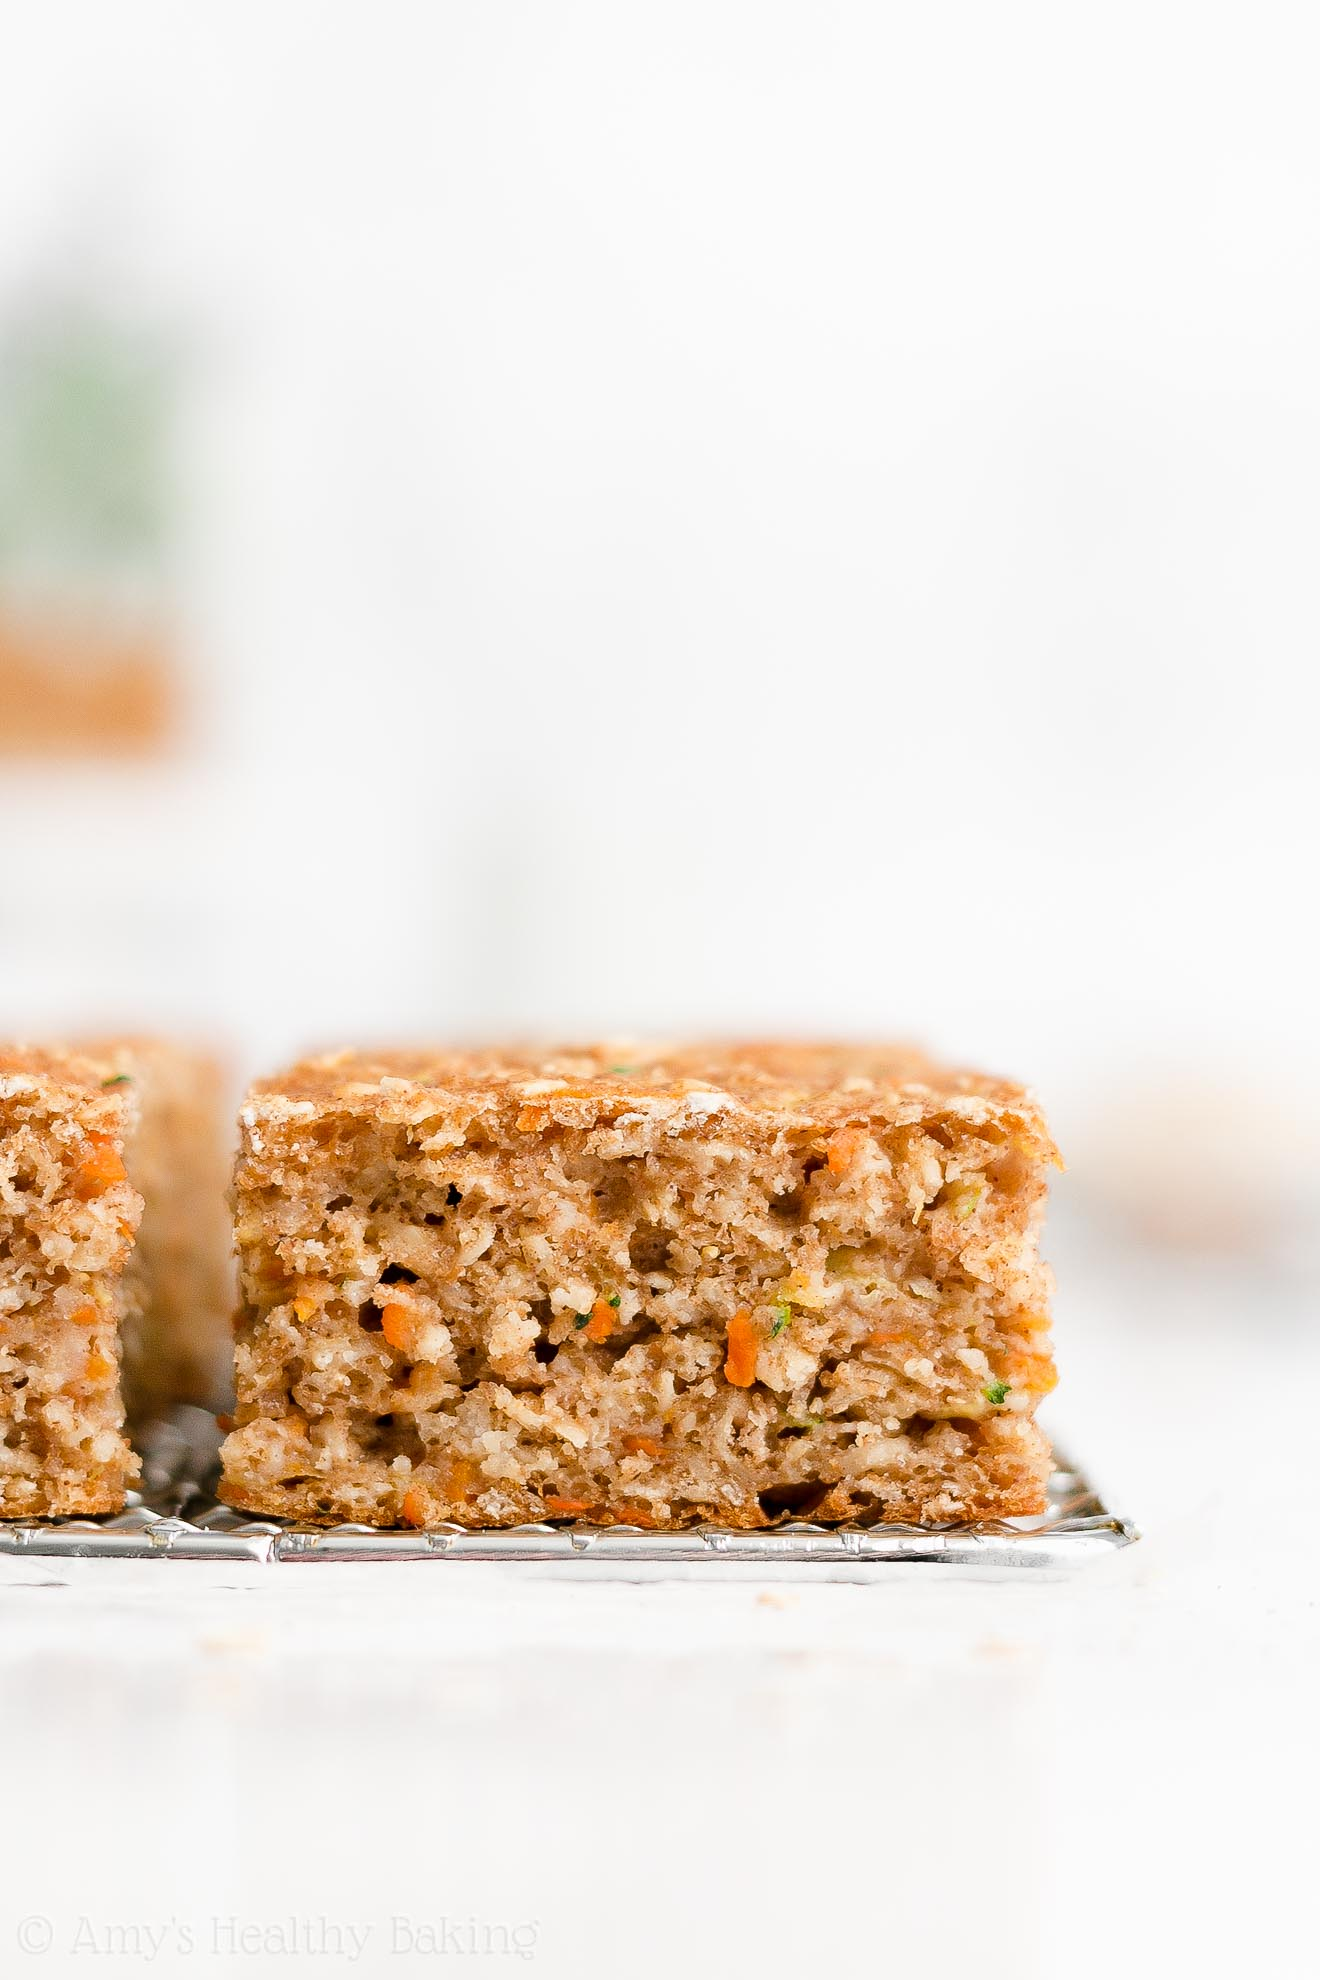 Easy Healthy Whole Wheat Greek Yogurt Carrot Zucchini Oatmeal Snack Cake